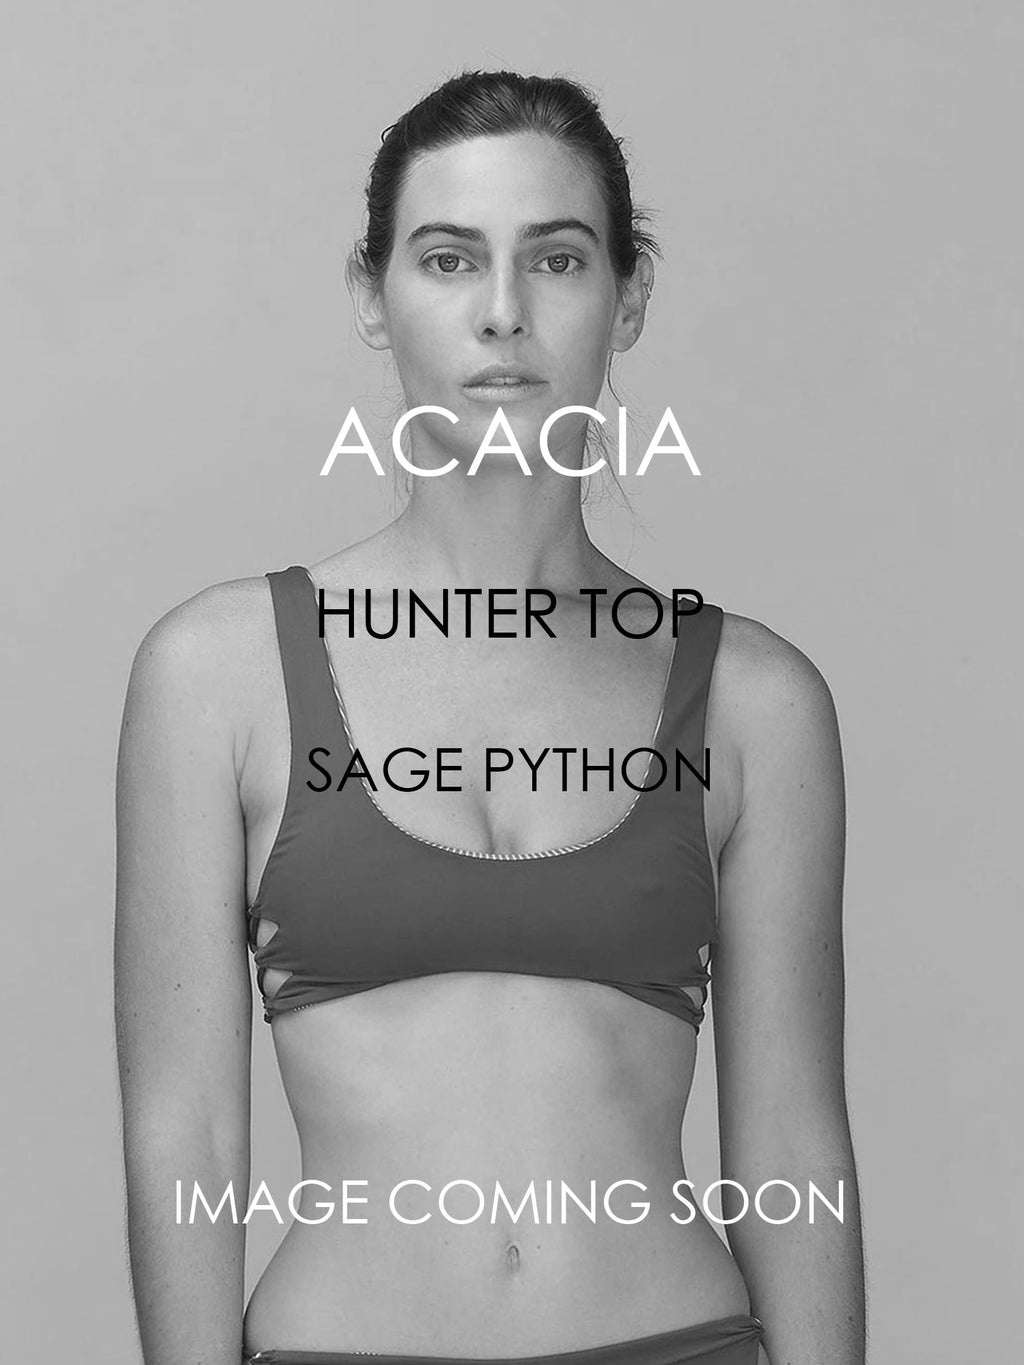 ACACIA Hunter Top | Sage Python